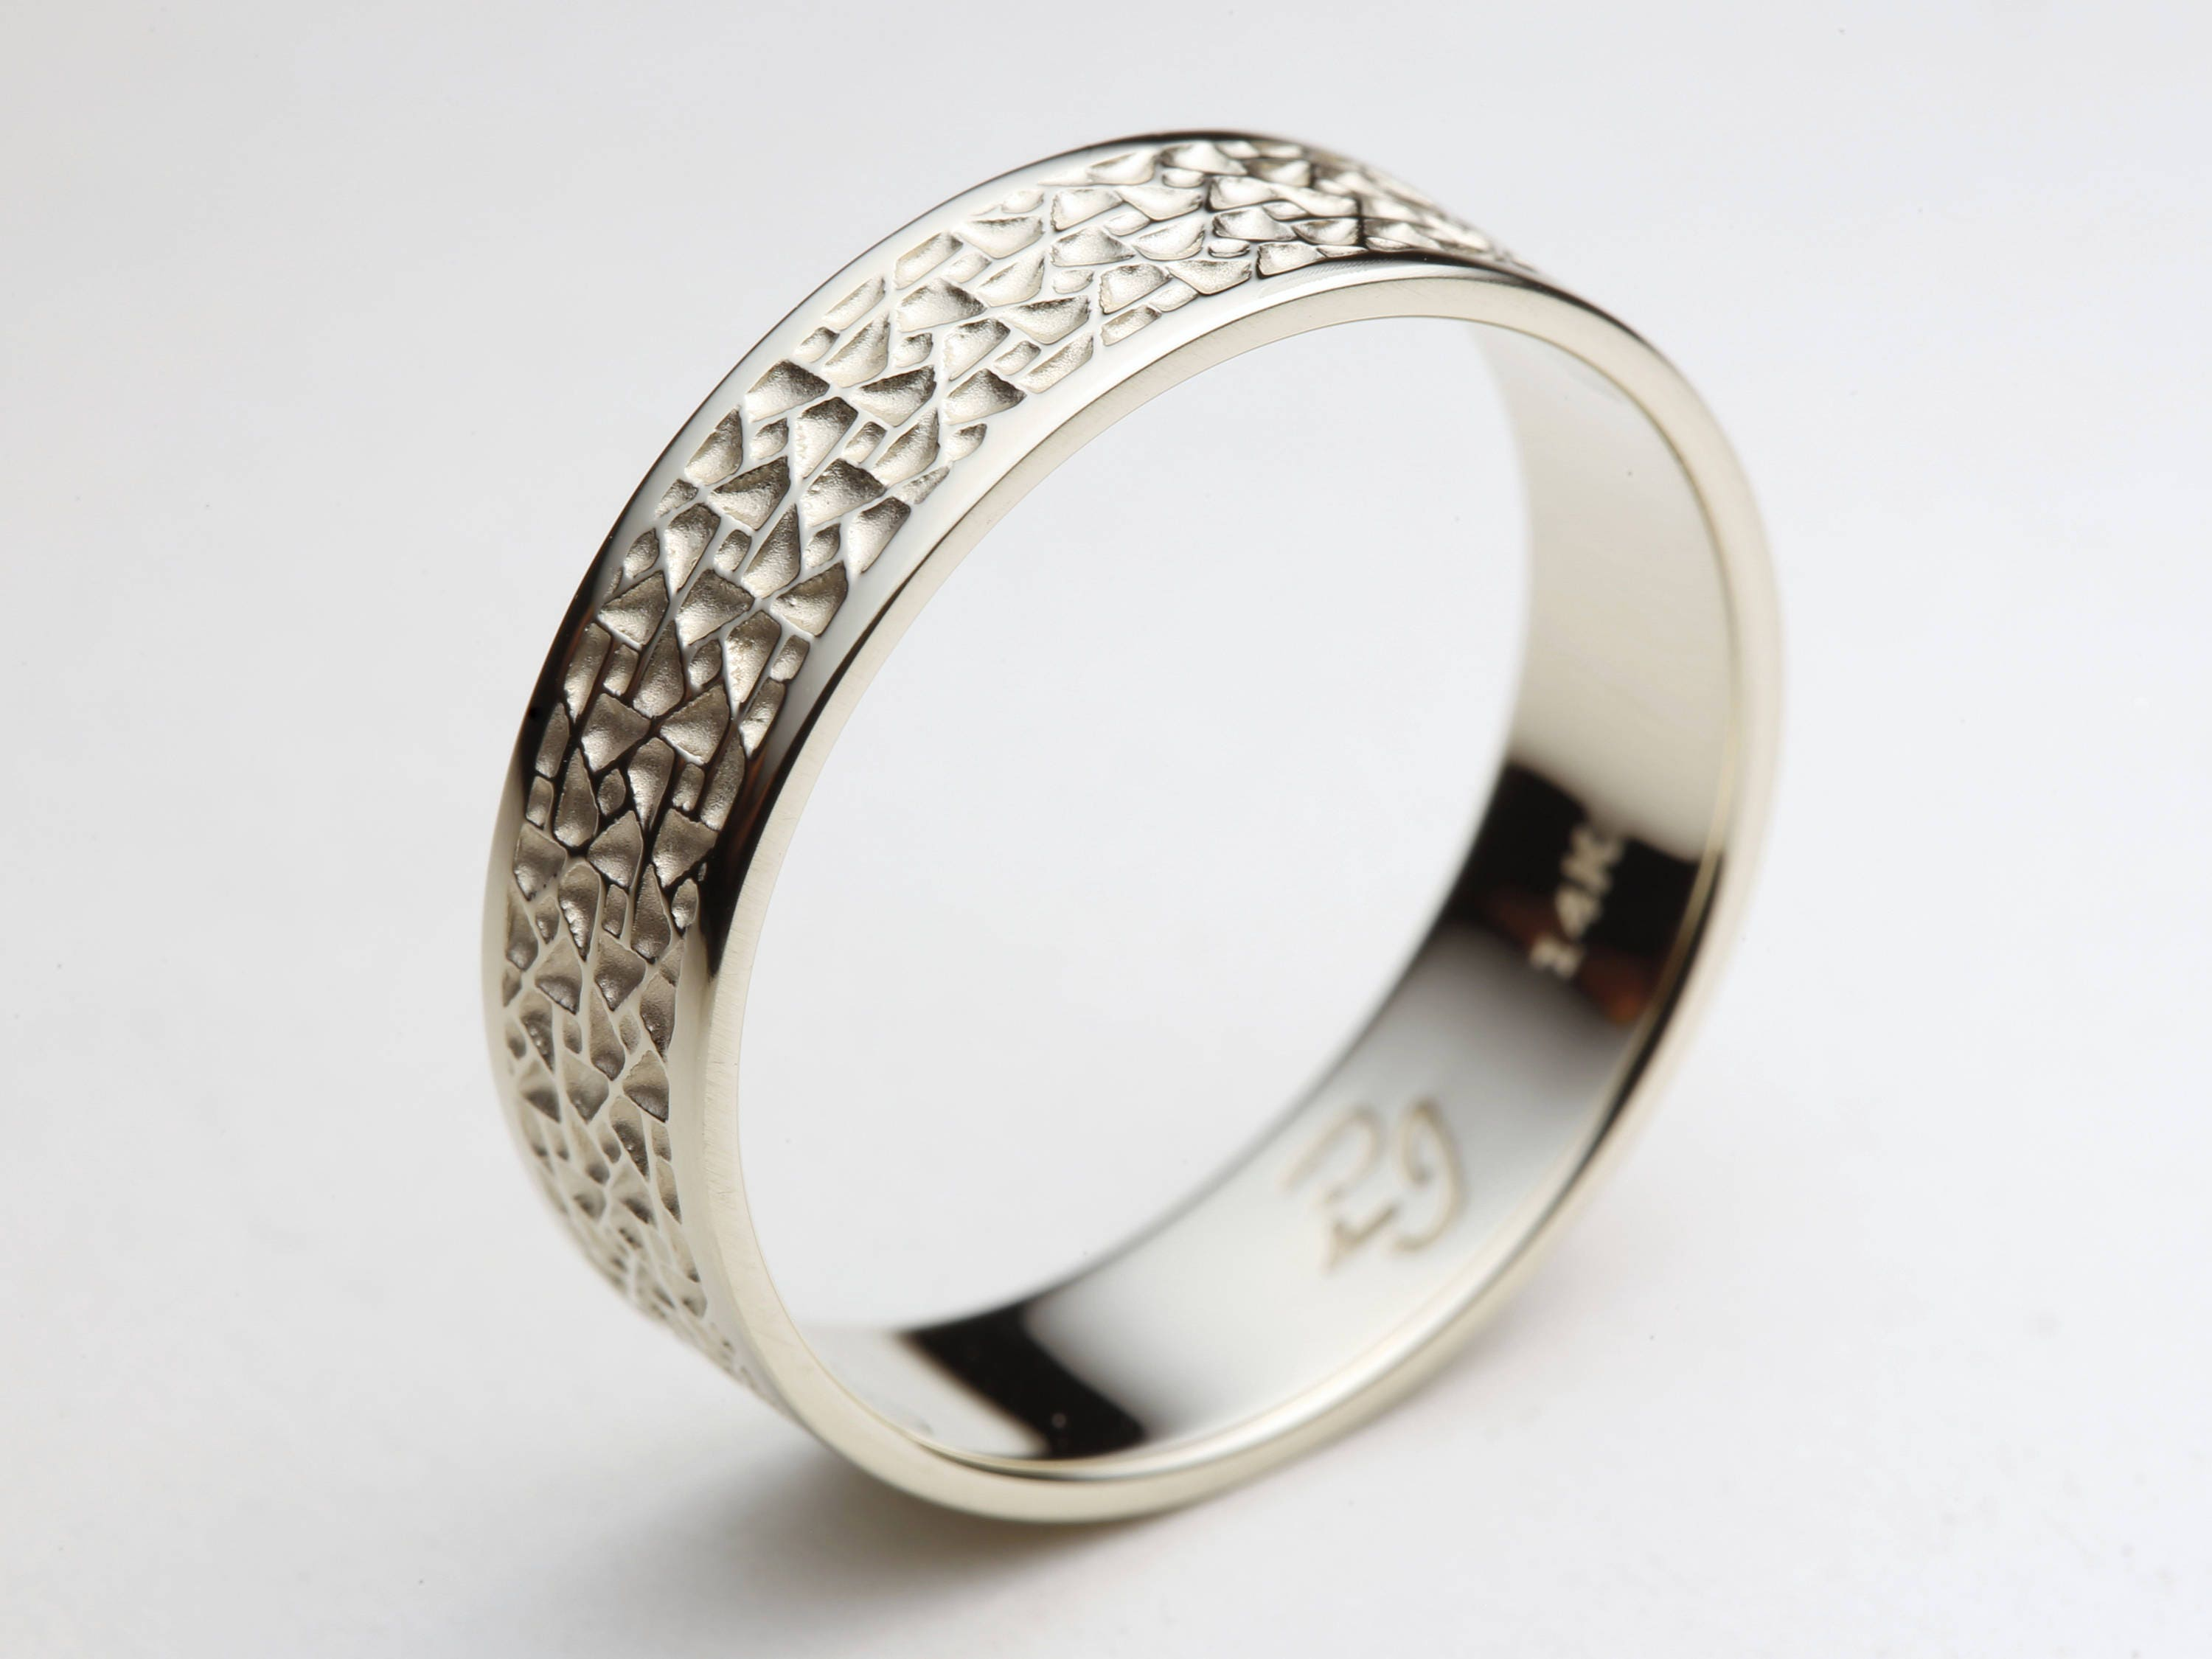 ring wedding rings patterned palladium gents